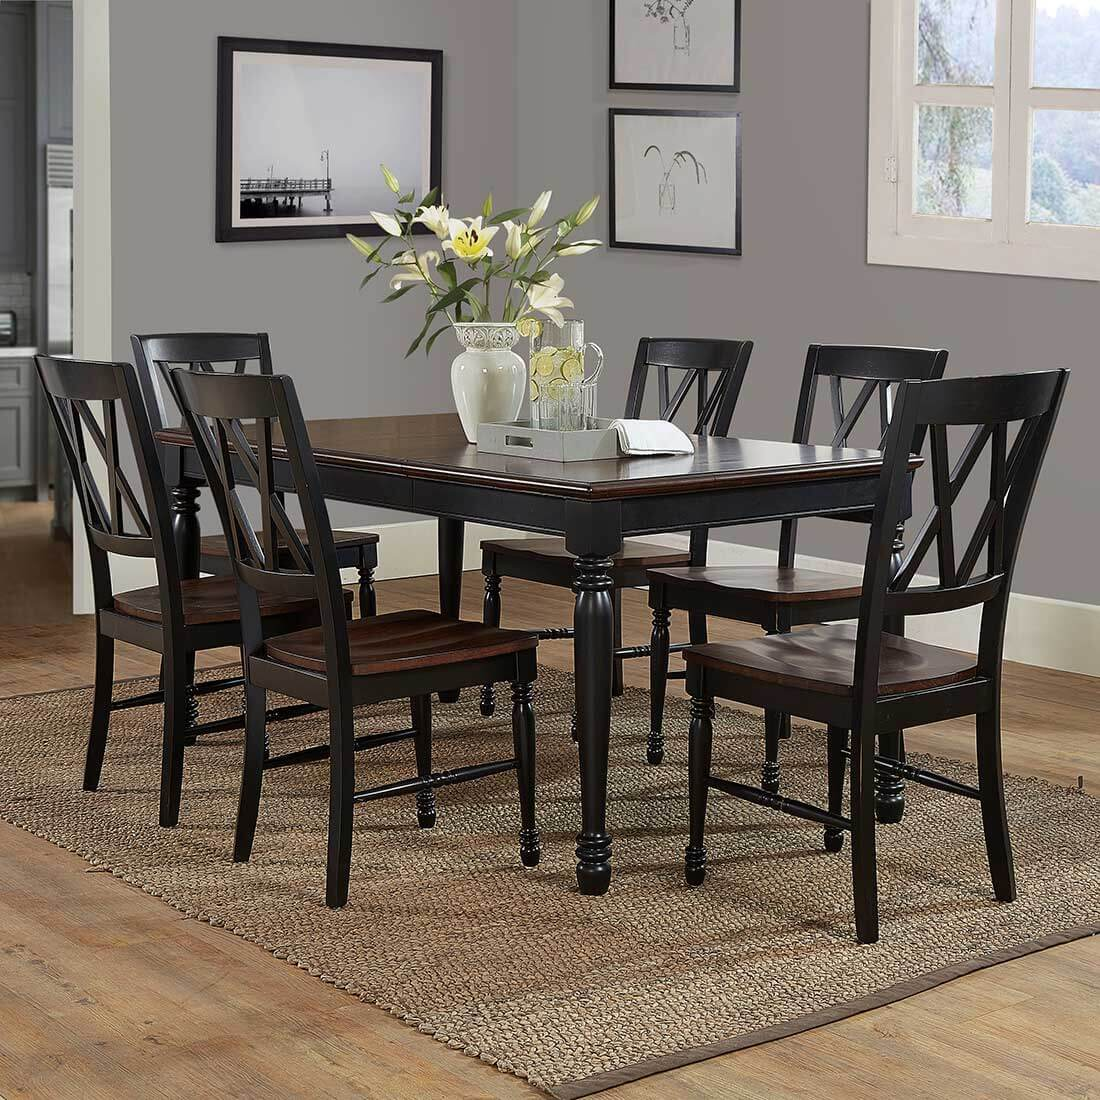 Table Shelby 7-Piece Dining Set